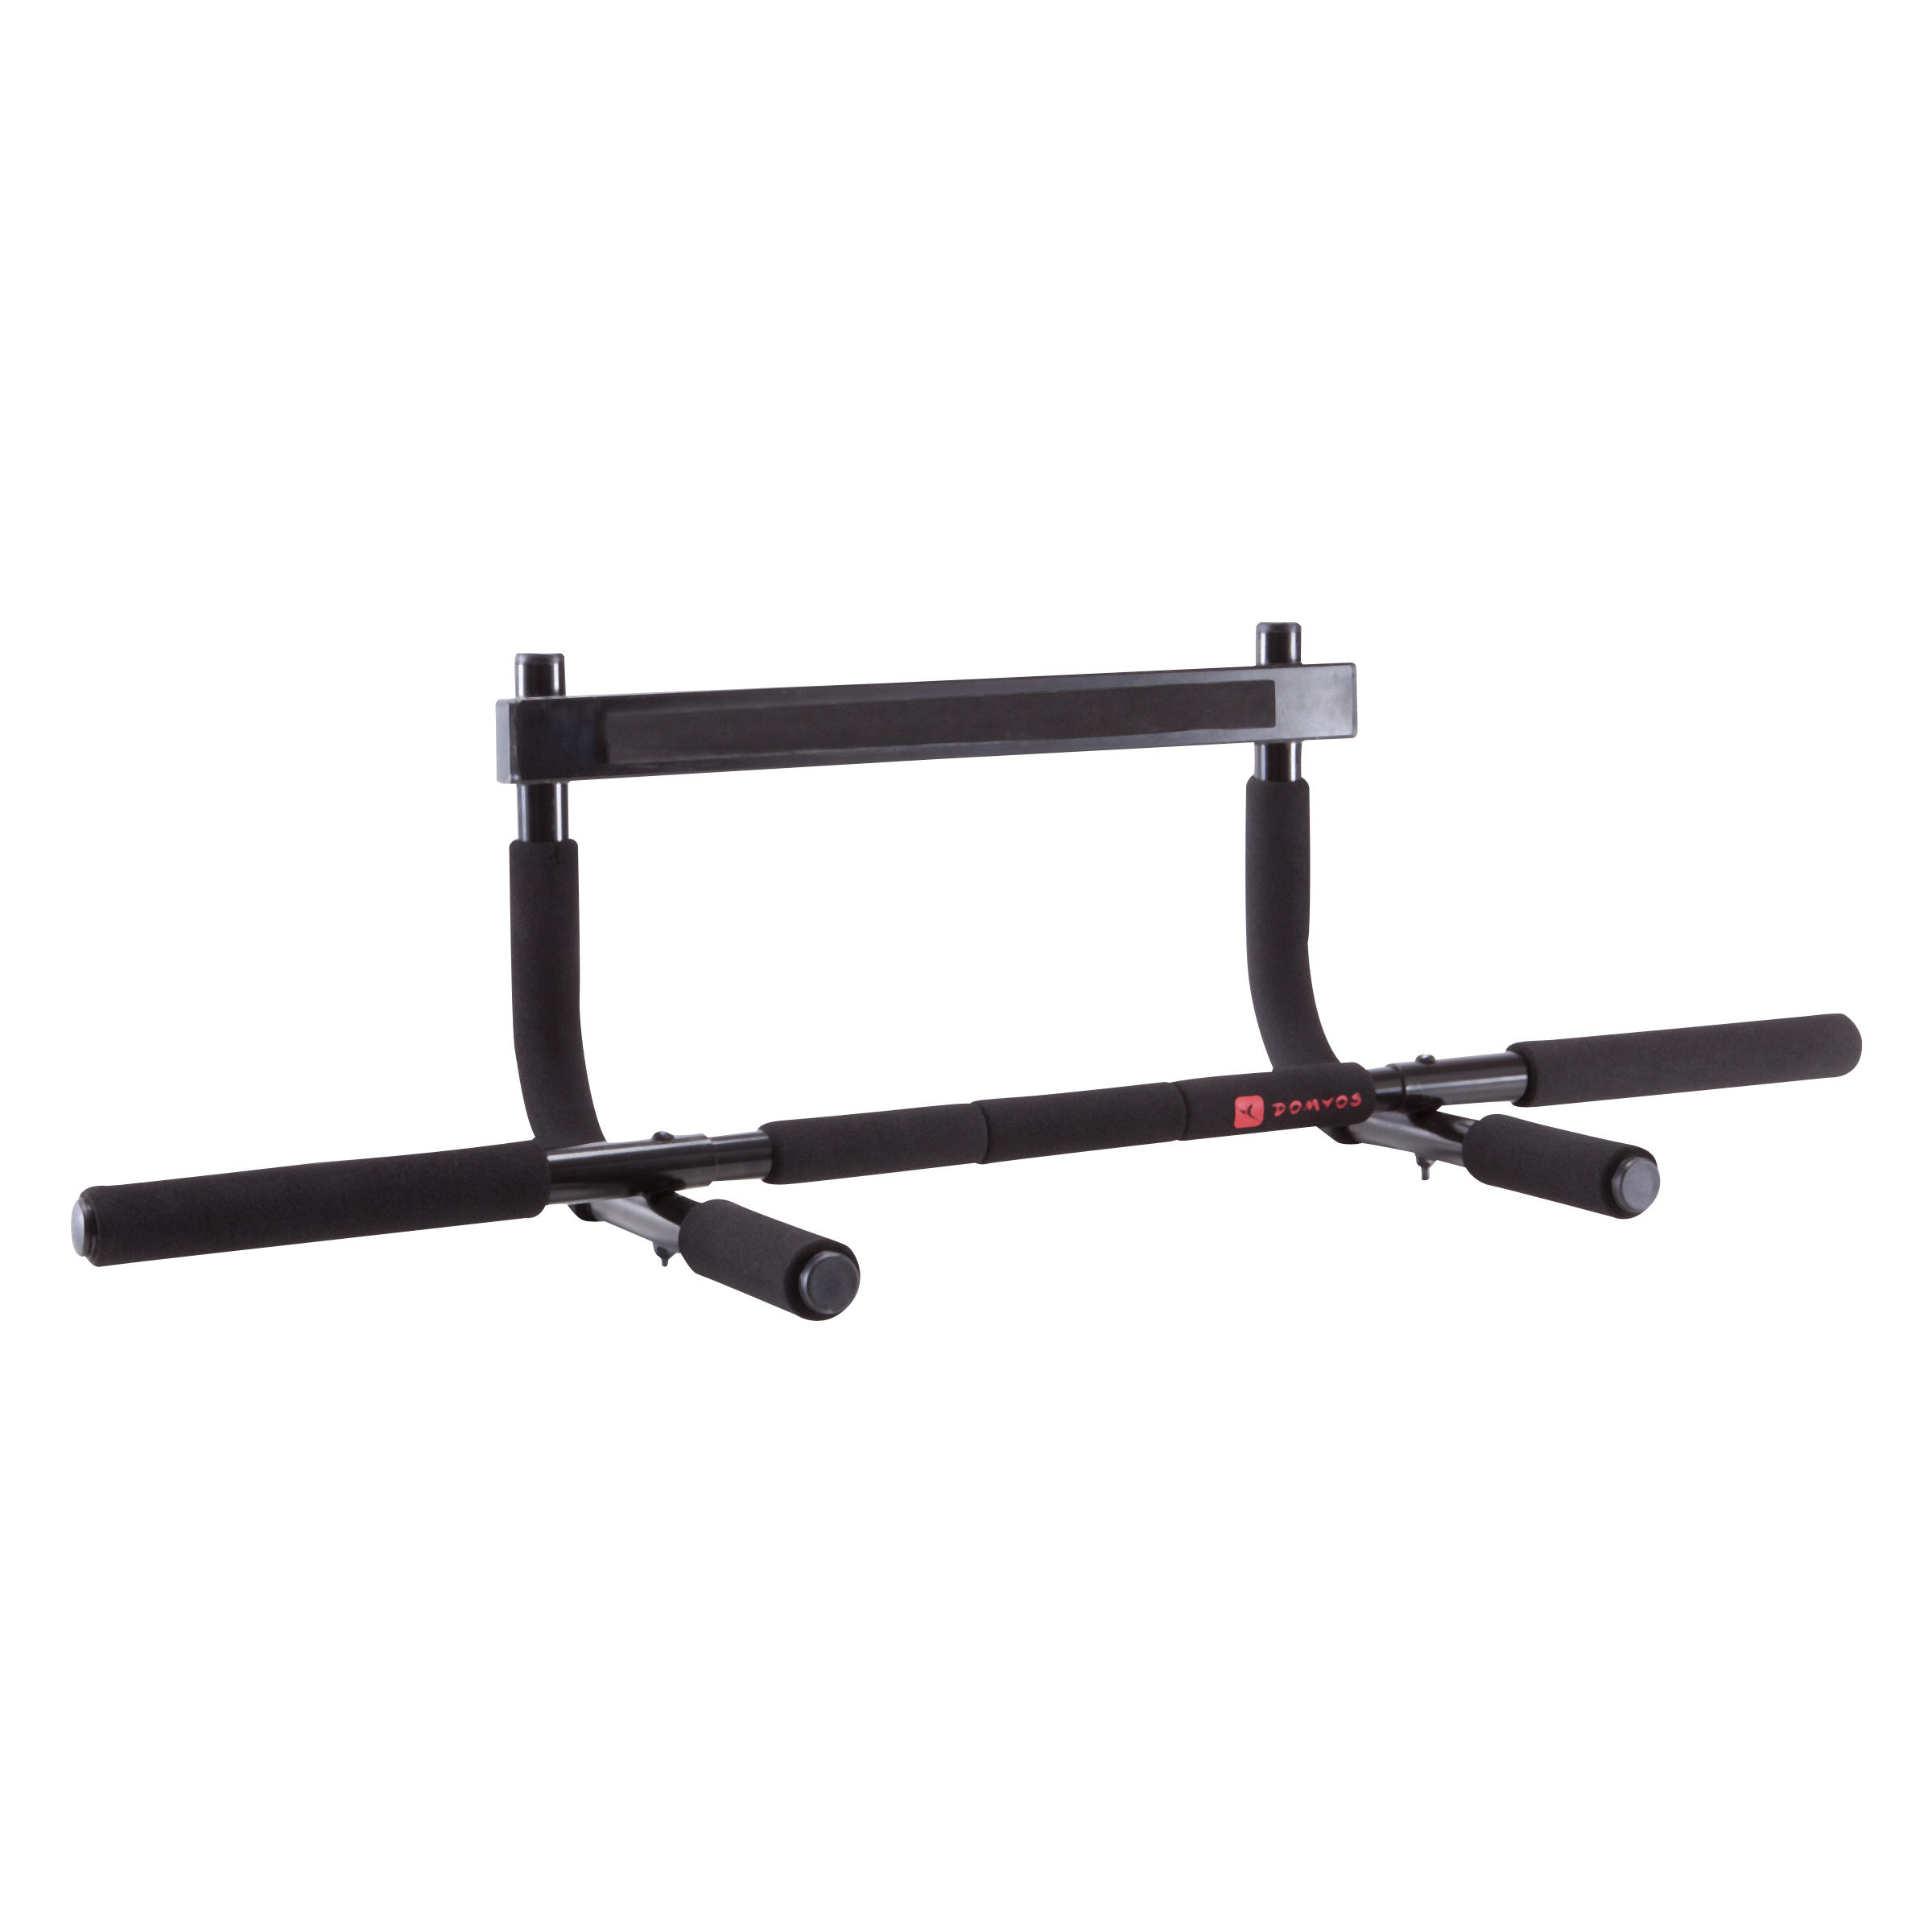 Barre de traction musculation pull up 500